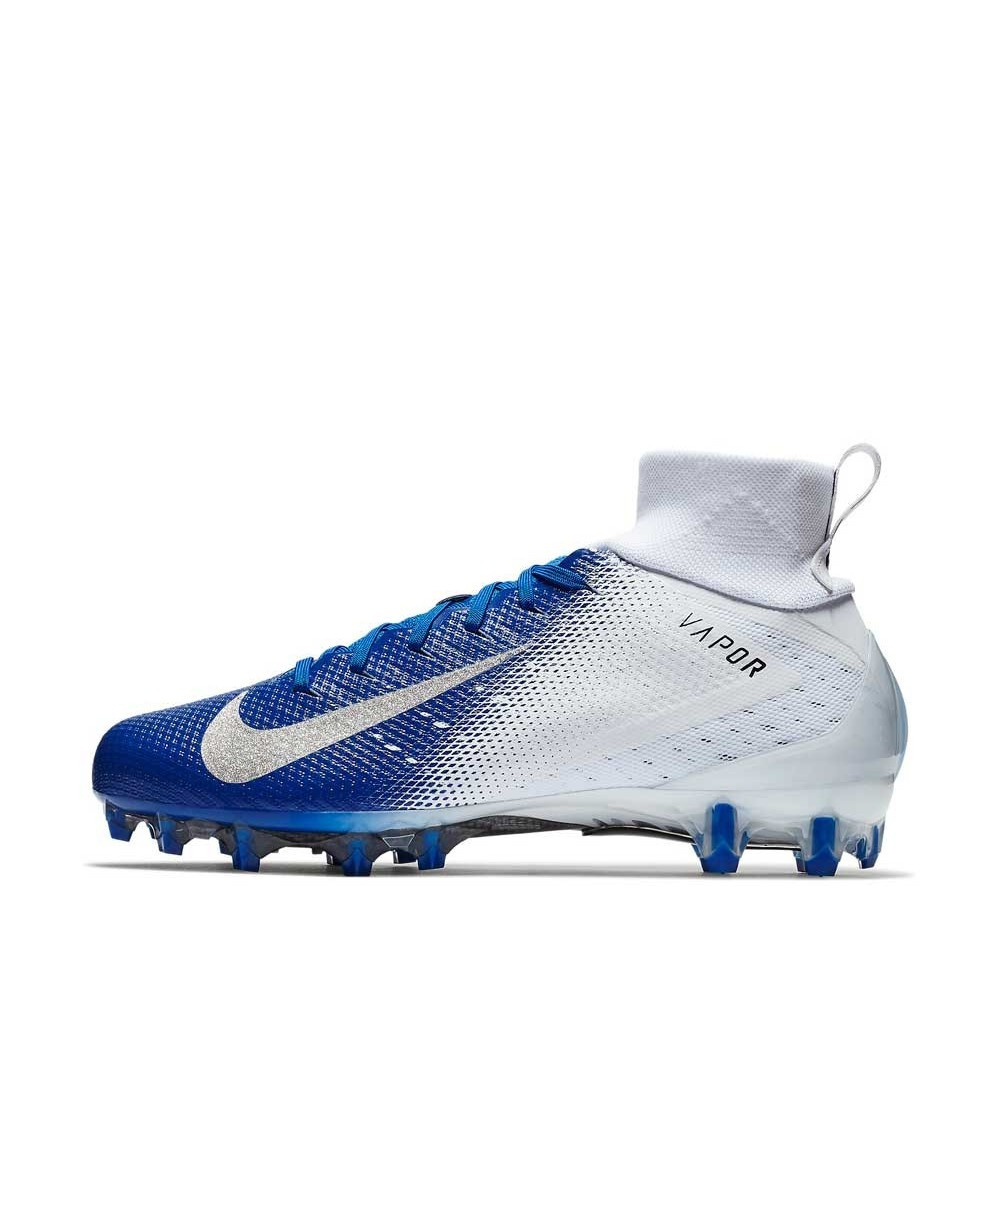 f5a5e1ea7c3a Nike - American Football Cleats for men, model Vapor Untouchable 3 Pro,  colour White/Game Royal/Photo Blue/Metallic Silver